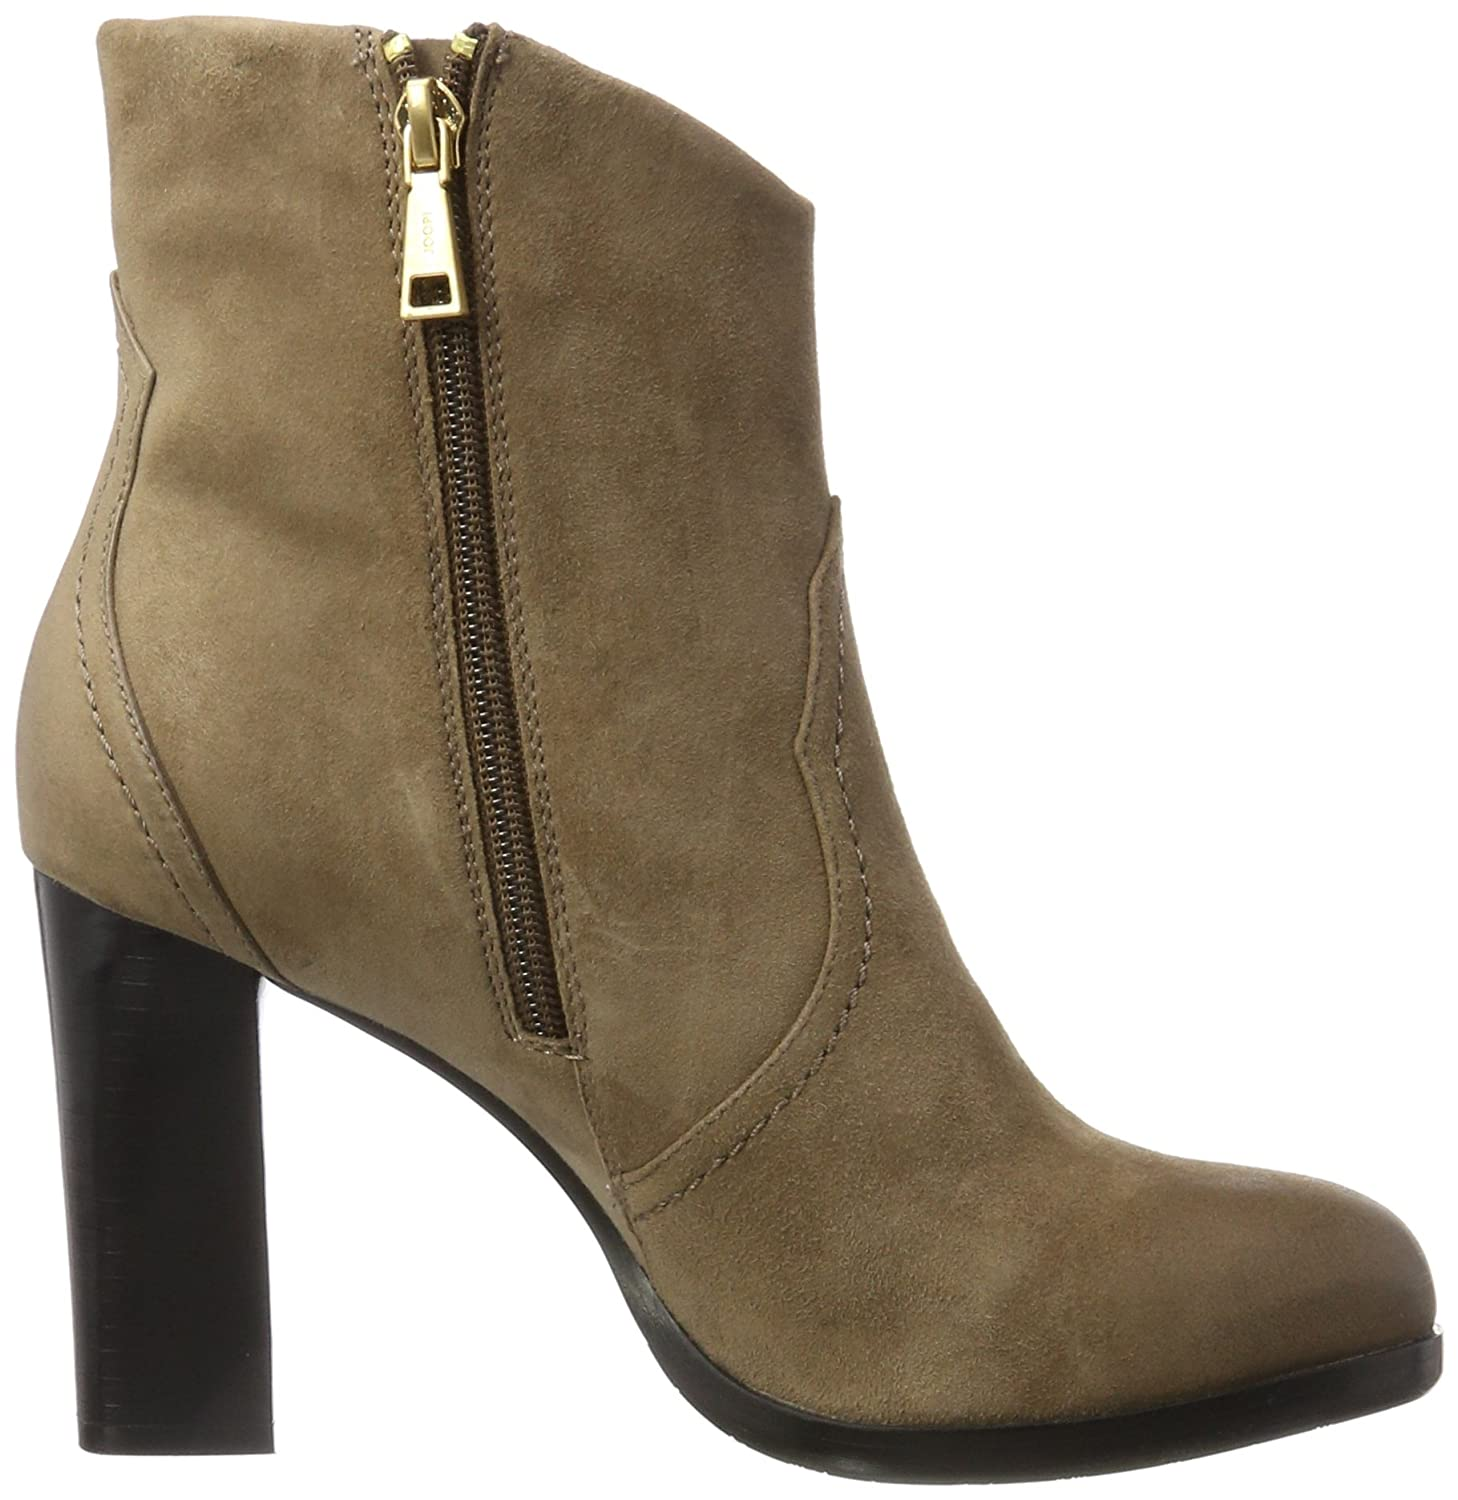 Womens Sykia Viola Lhz 1 Boots Joop Affordable Cheap Price New Fashion Style Of Free Shipping Clearance Purchase Sale Online 1QEKaONIYj